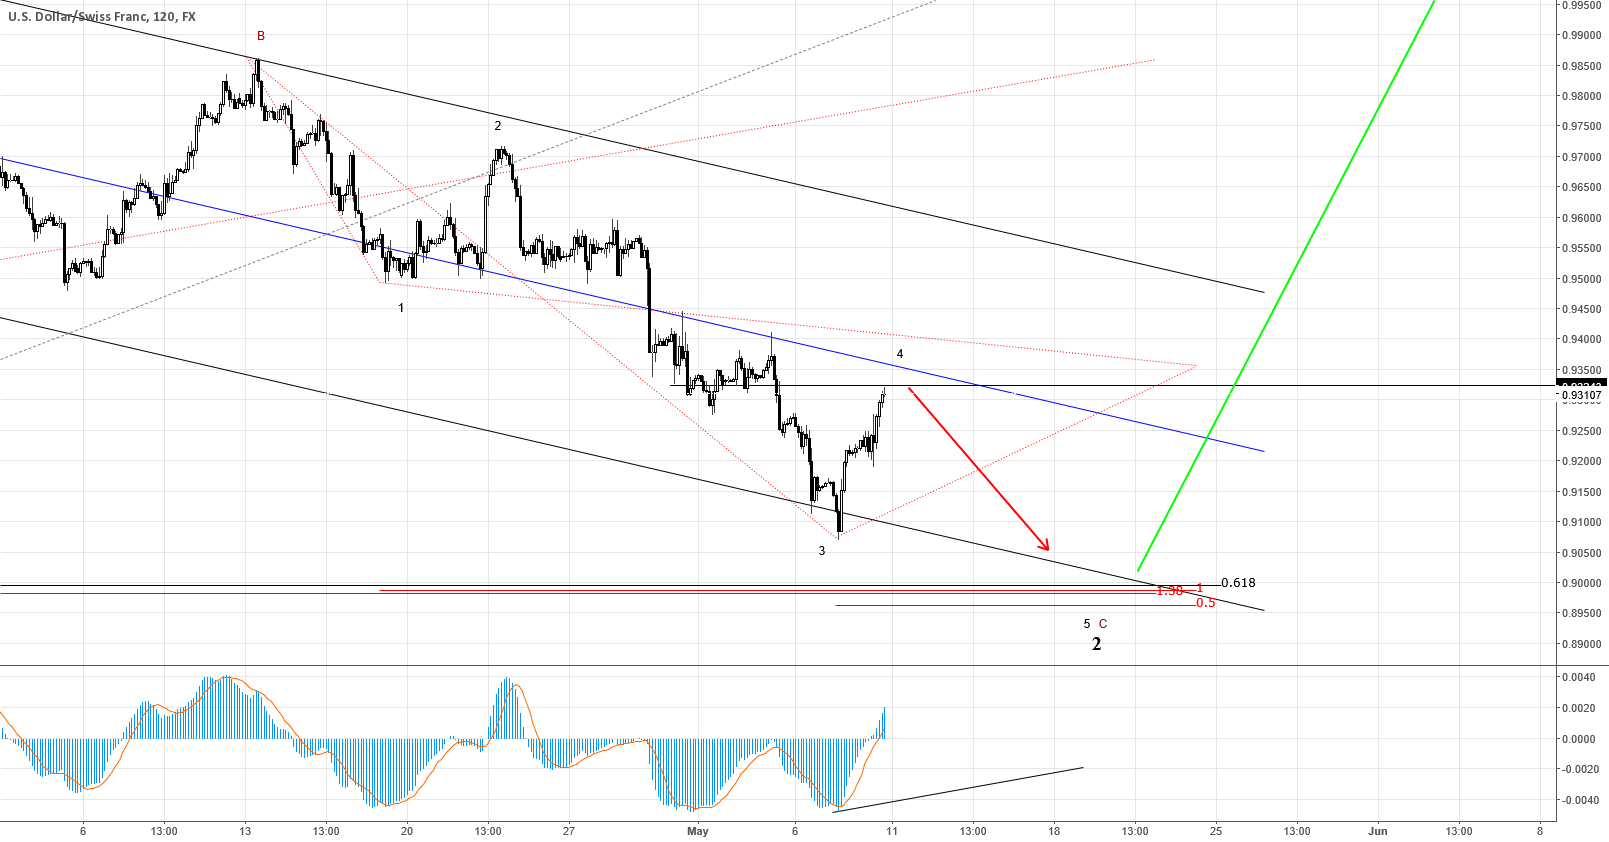 USDCHF could be a great daily buy soon